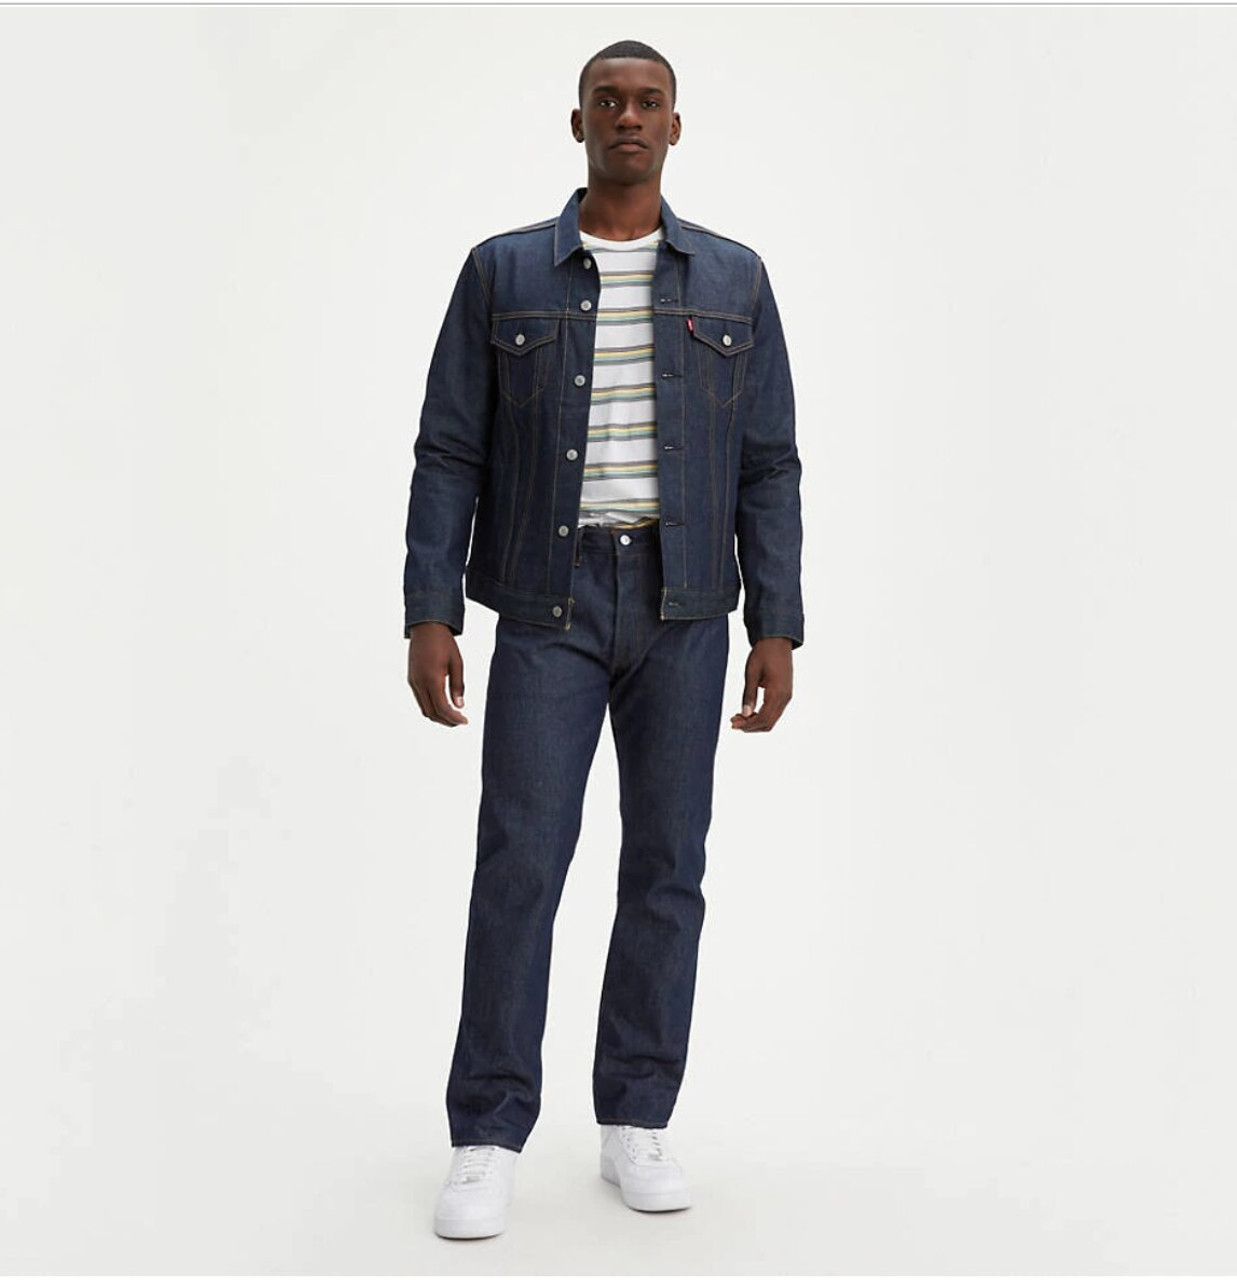 Levi's 501 Shrink-to-Fit Big & Tall